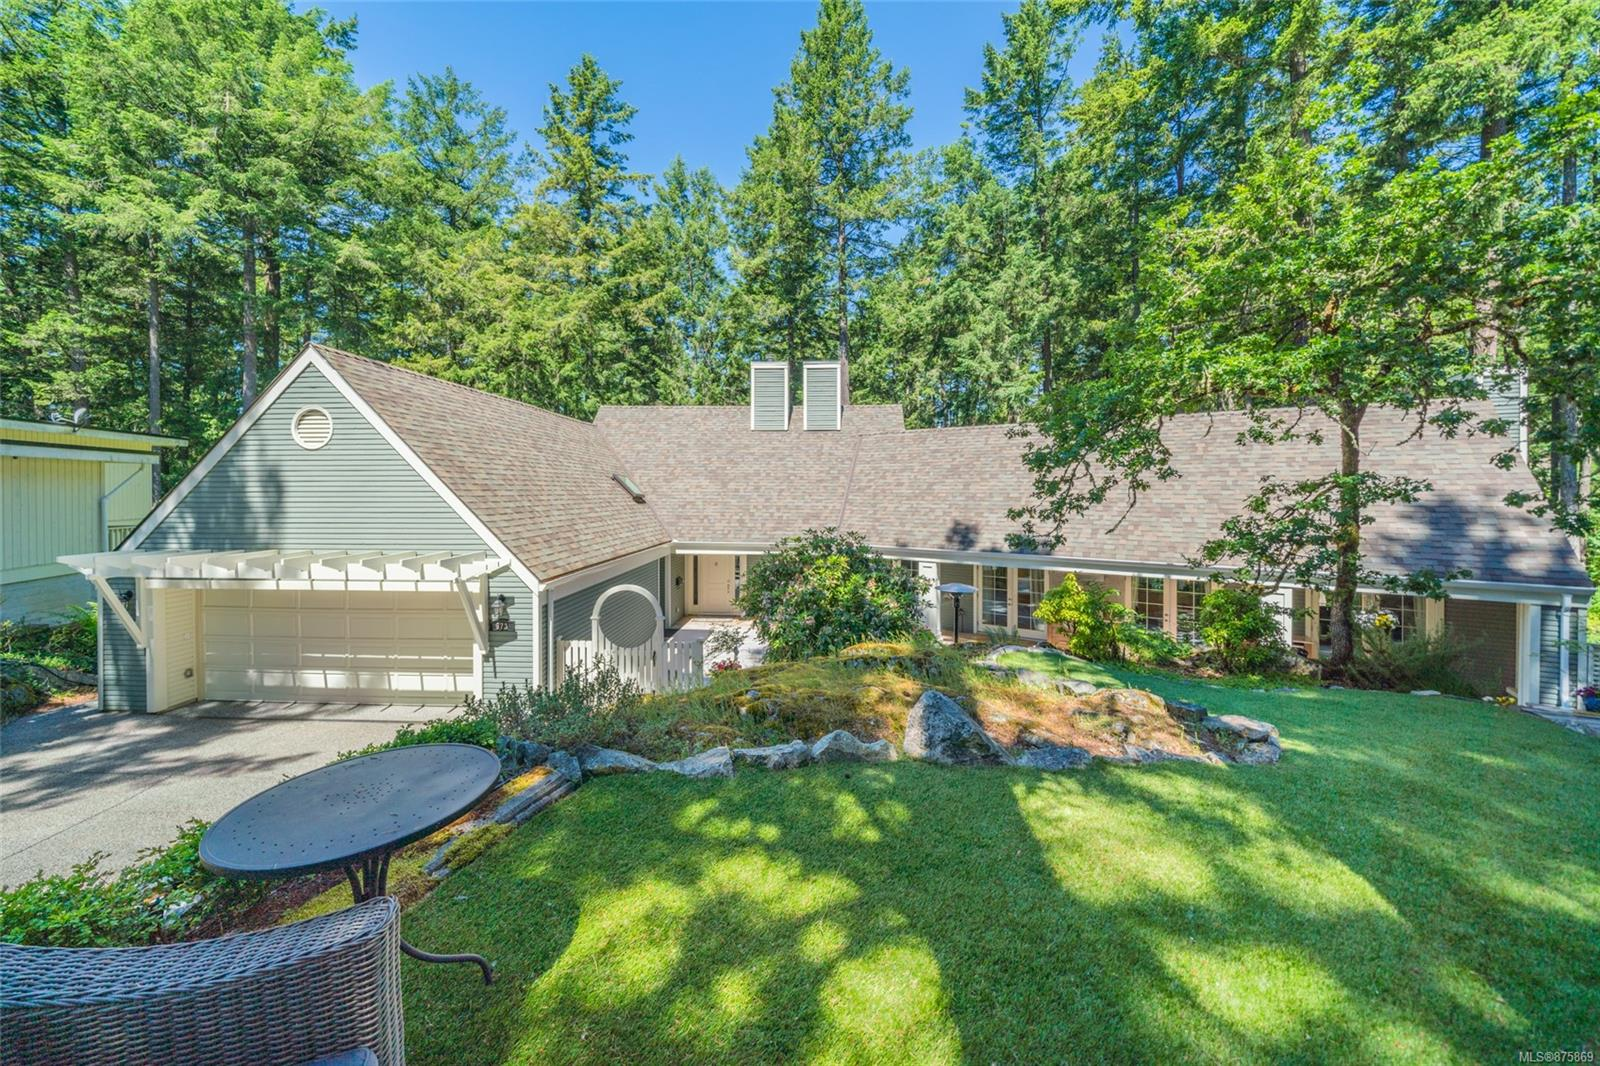 Overlooking lush parkland & situated on a 13,500+ SQFT lot, this CARE Award winning property has been renovated top to bottom by GT Mann offering 3700 SQFT of immaculate living space. Conveniently located on a quiet family-oriented cul-de-sac, this 4BED, 4BATH home provides much more than timeless luxury & stunning views. Luxury custom kitchen by Southshore featuring Jenn Air appliances, Cambria quartz countertops, sit-up island, breakfast nook + formal dining & living rooms. Head downstairs to take advantage of the expansive Media room with 10' projector screen,  fully equipped wet bar & additional rec-room/guest accommodation. Experience extravagance from the Primary Suite providing an oversized ensuite & ample custom walk-in closet. Laundry room includes a built-in dry rack, ample storage, sink & new washer/dryer. A host's dream outdoor space, 1000 SQ FT South facing deck, Synlawn green space & custom built in BBQ kitchen including separate bar & fridge. Your dream home awaits!